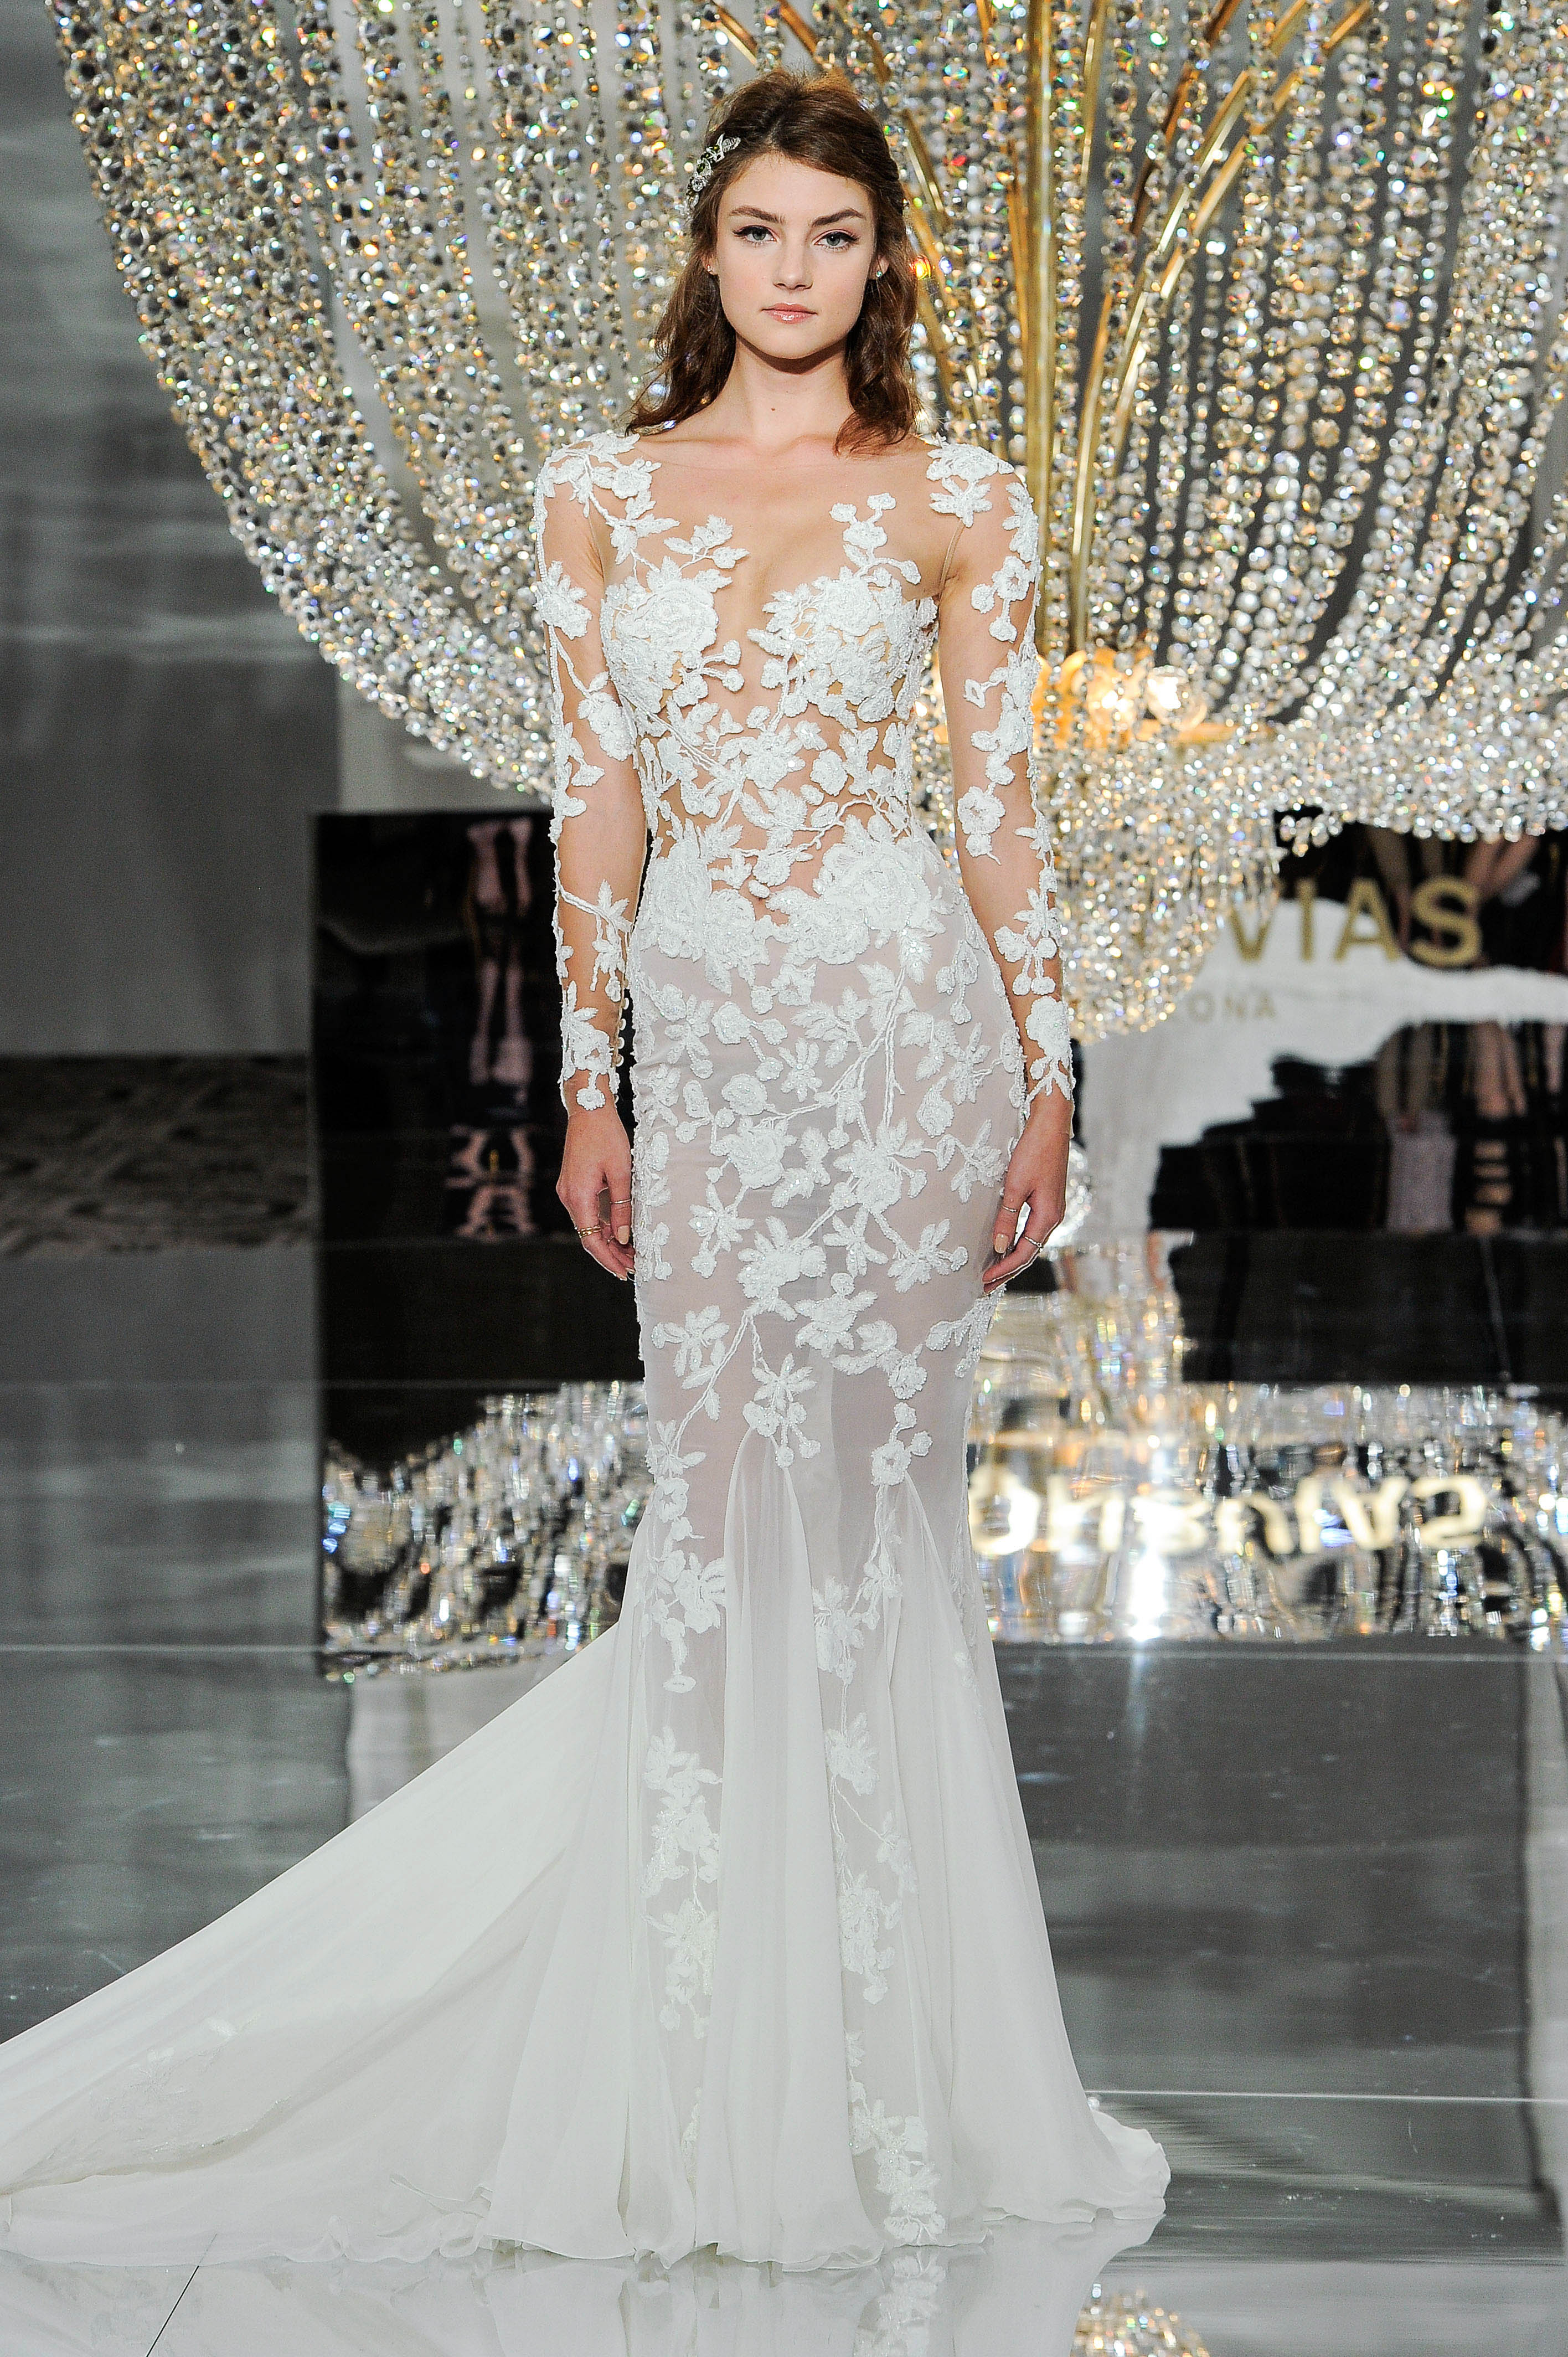 pronovias wedding dress fall 2018 long sleeve sheer lace mermaid